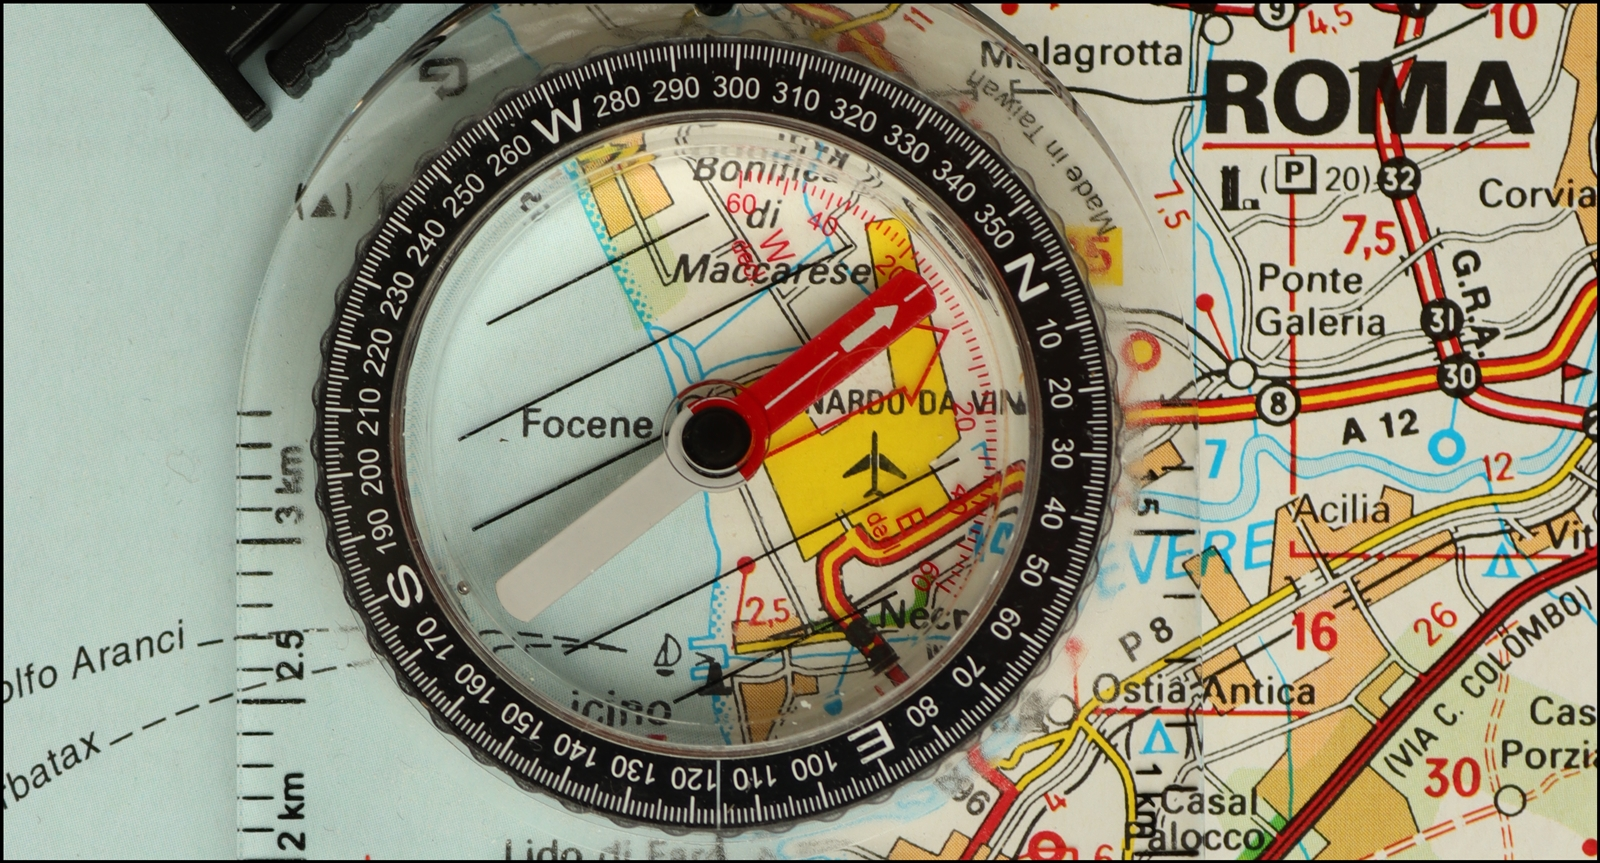 Compass pointing north, resting on a map of Italy, pointing towards Rome